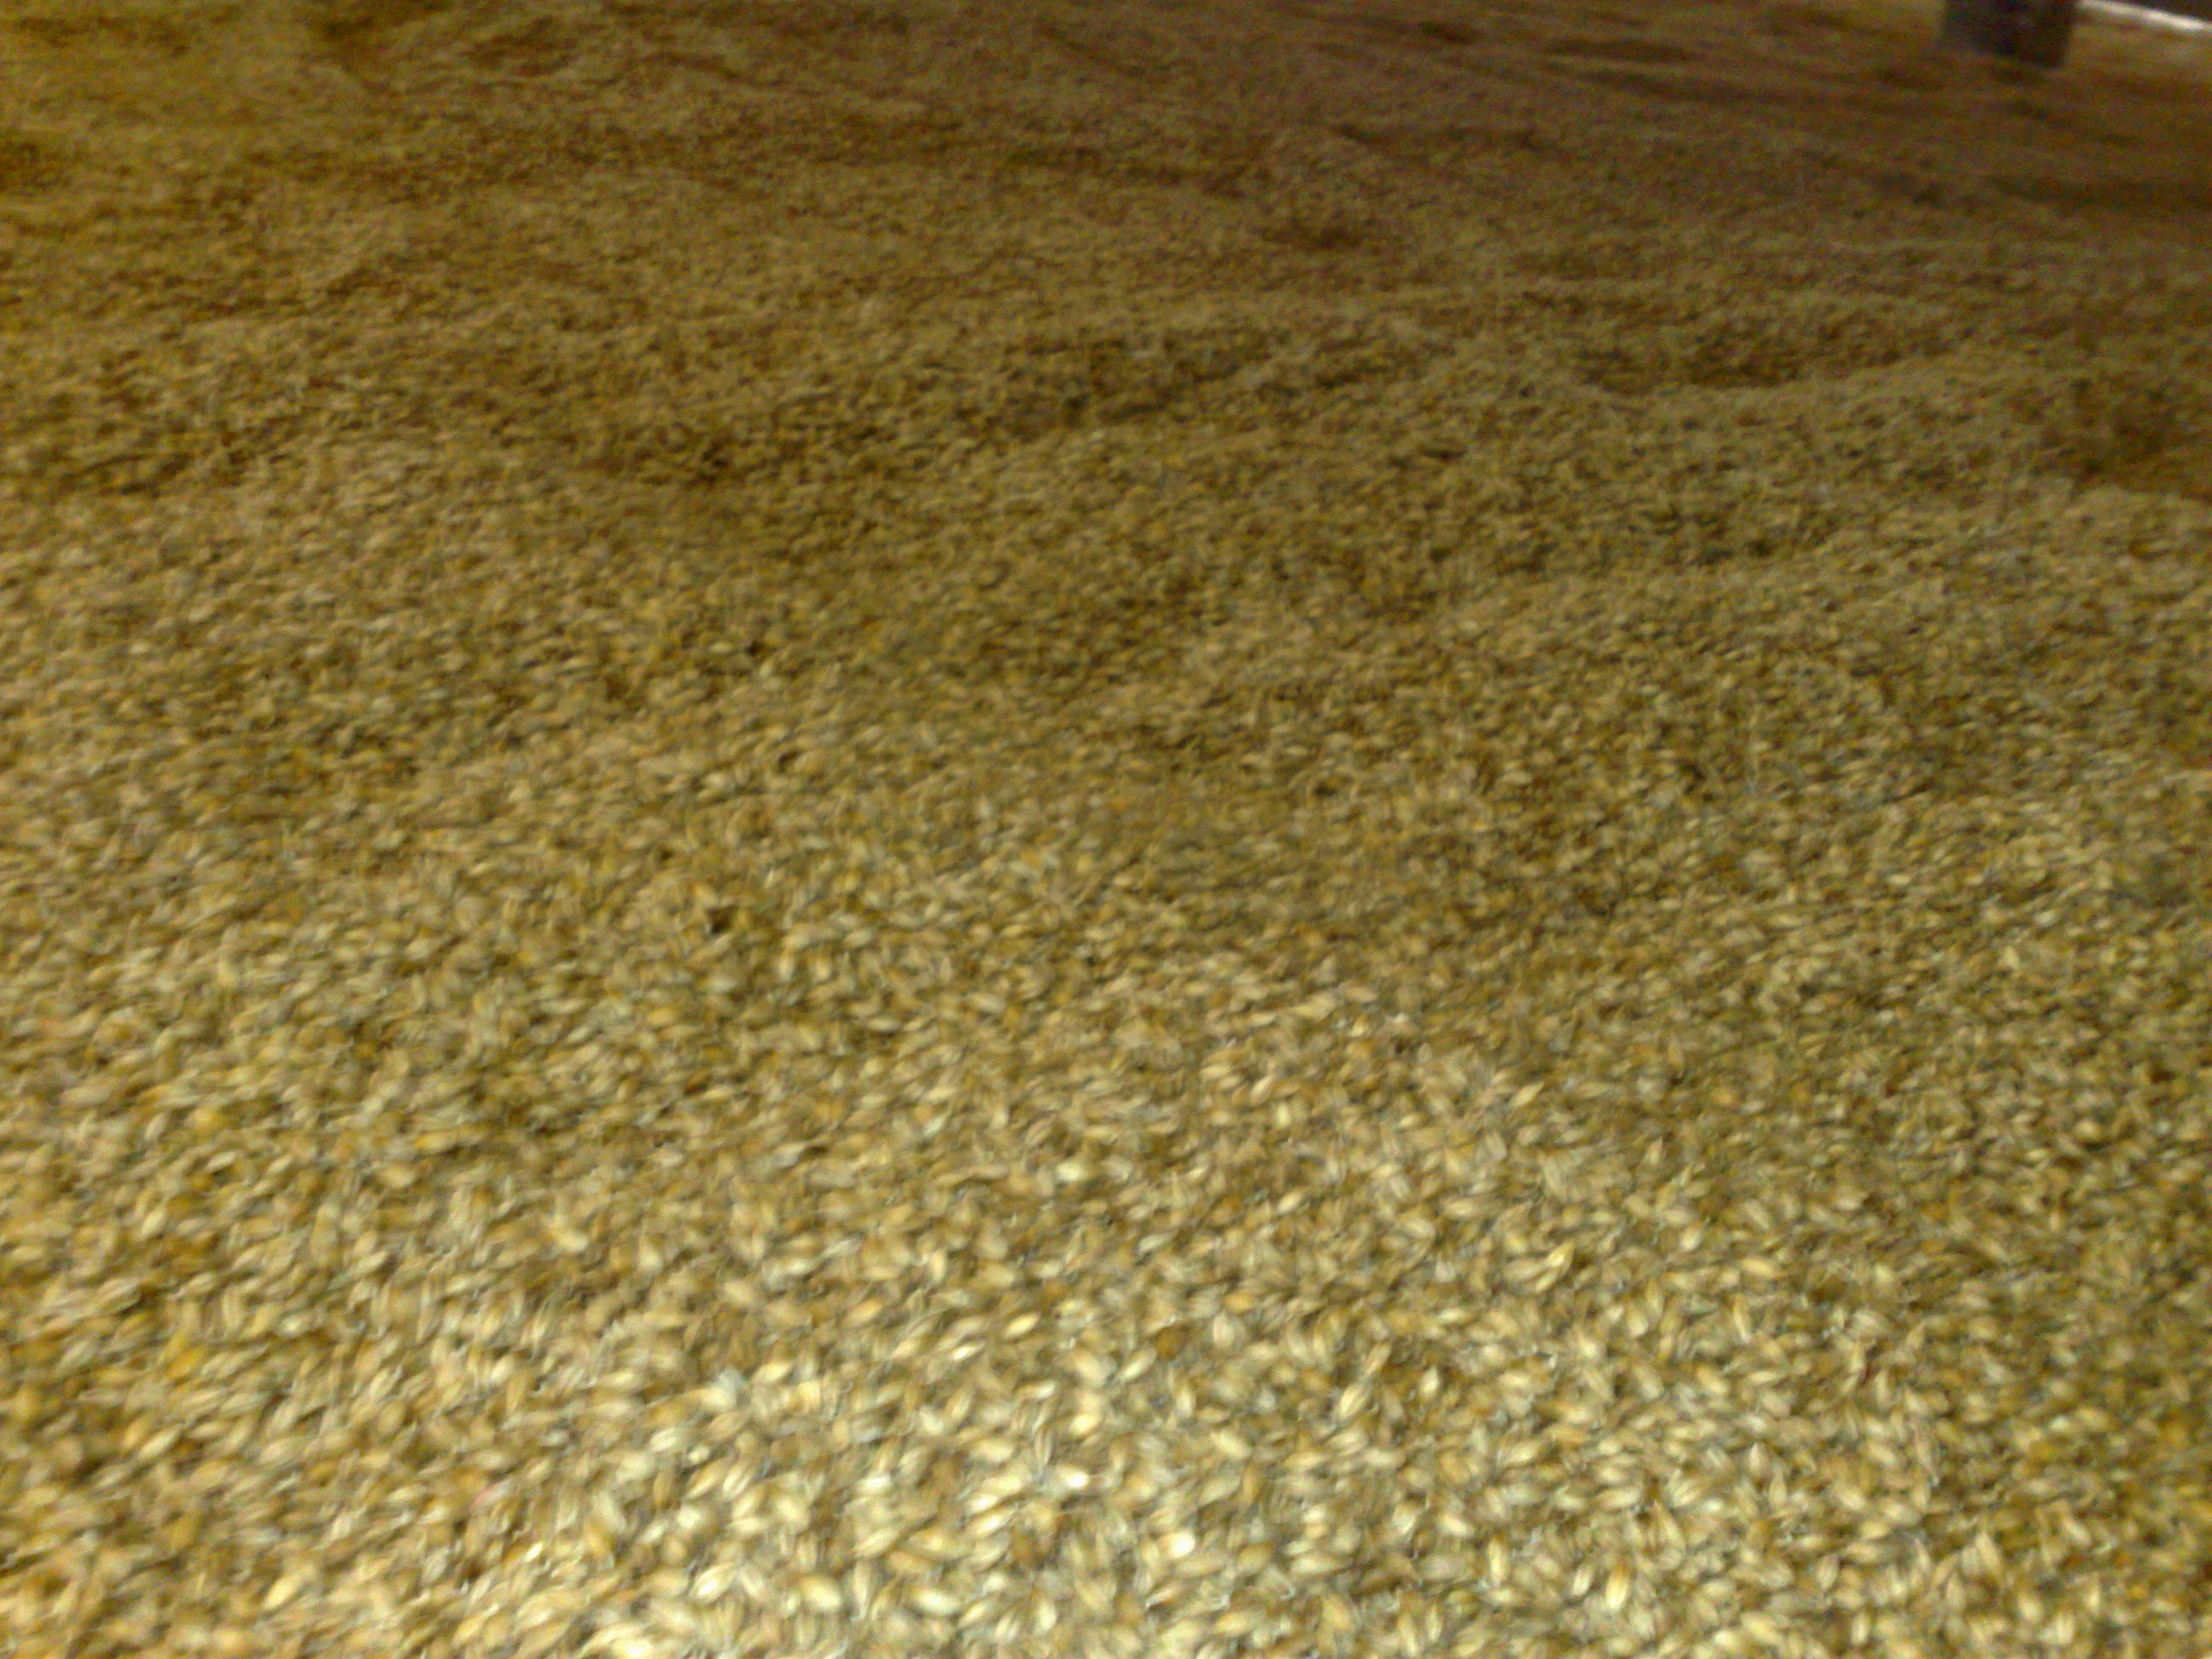 Laphroaig floormalting drying